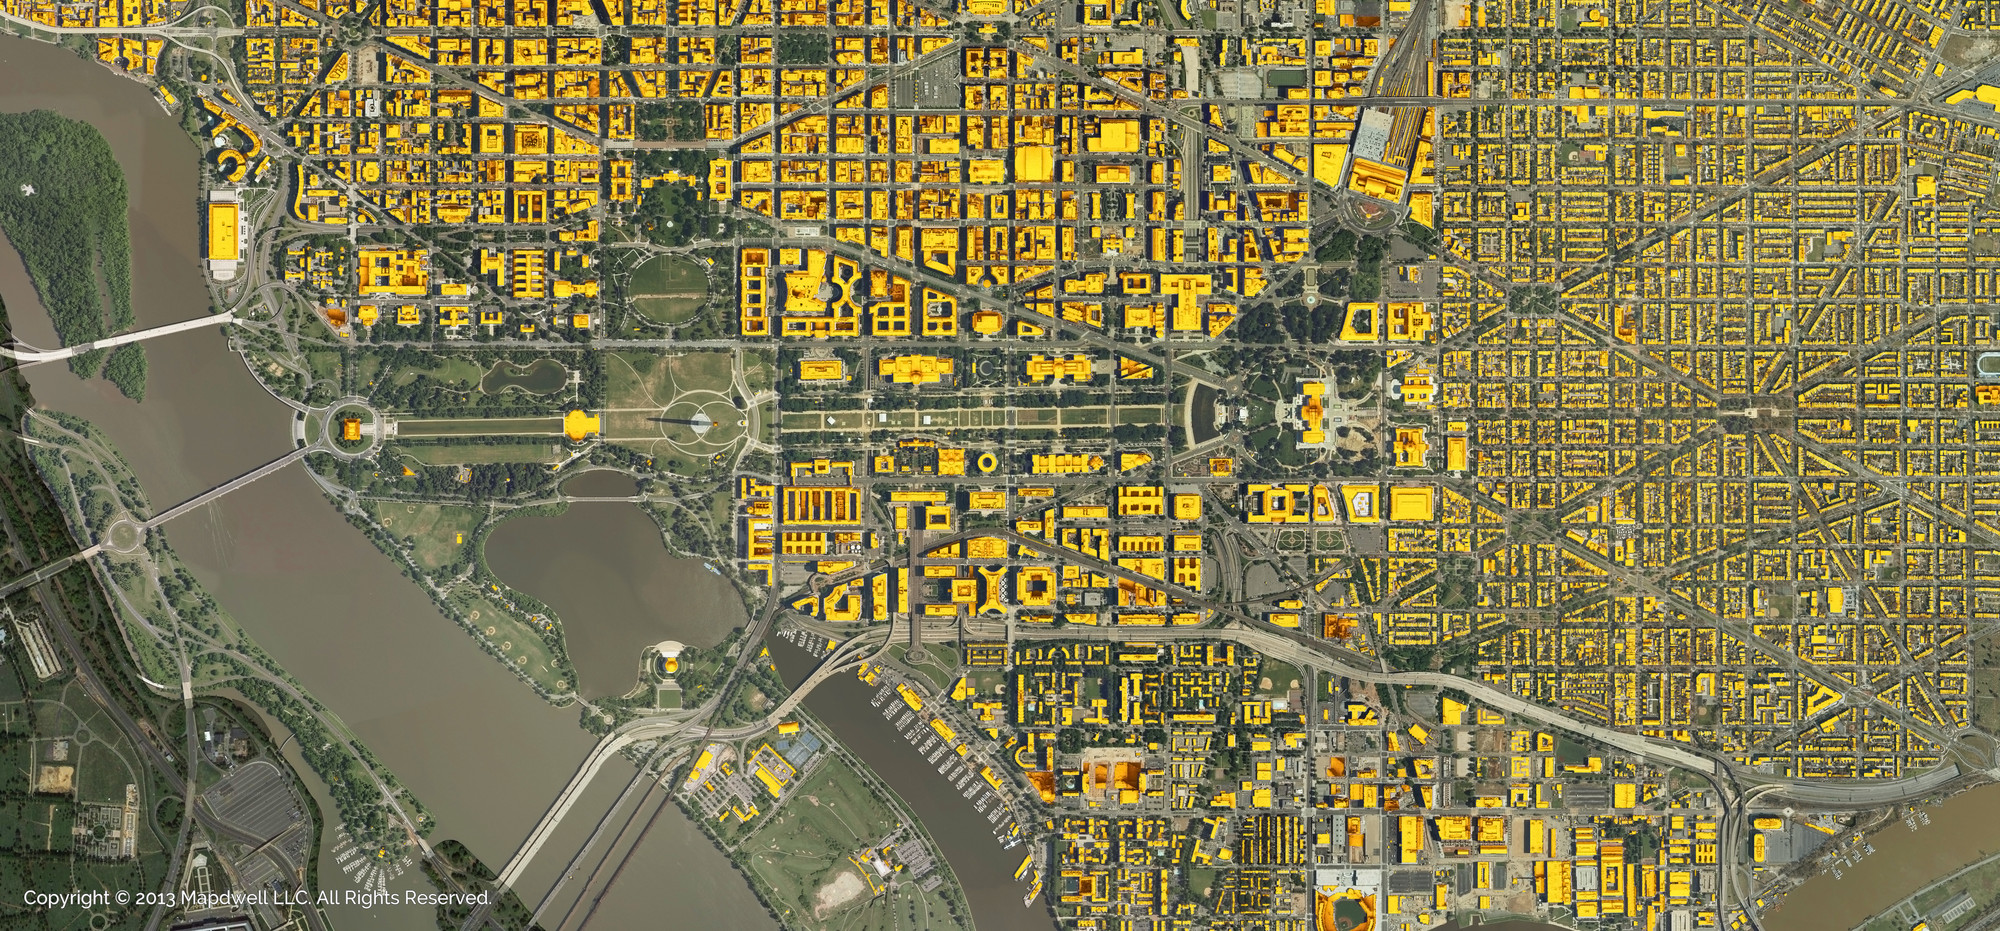 National Mall. Image © Mapdwell